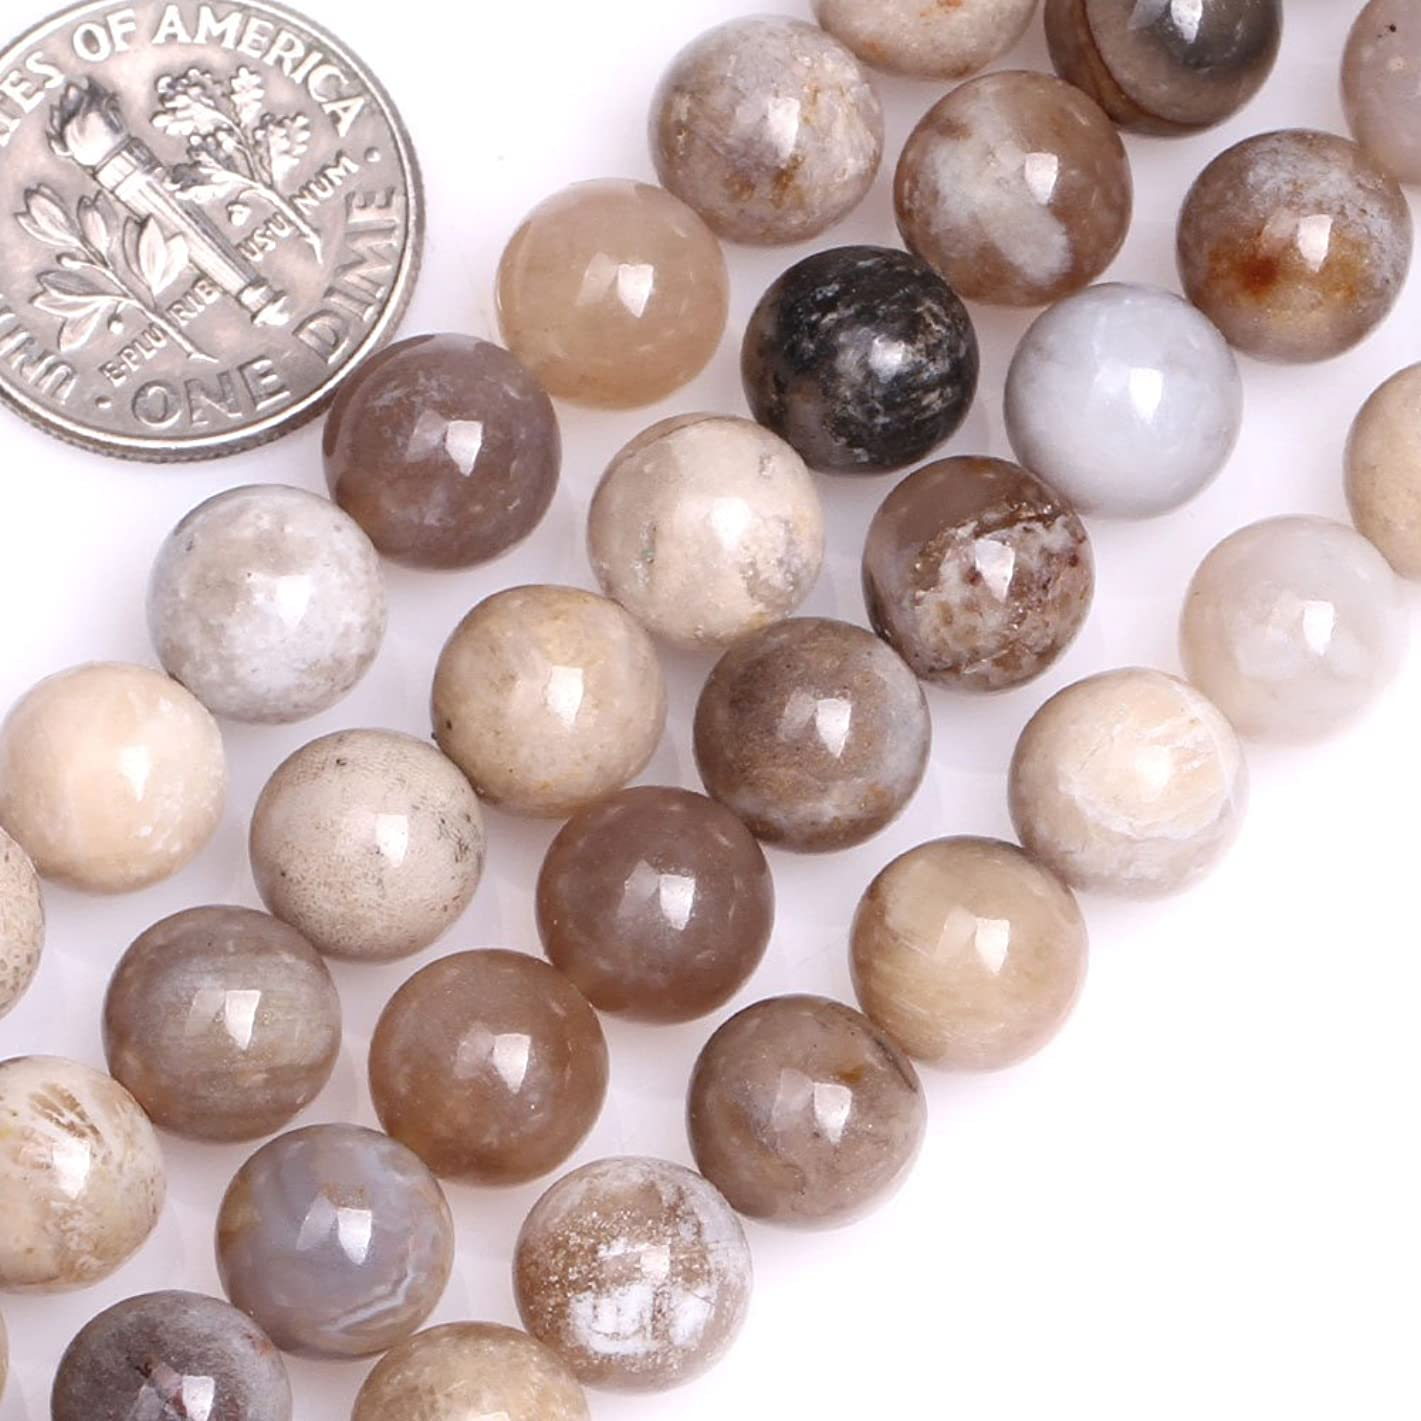 GEM-inside Natural 8mm Round Multicolored Ocean Fossil Agate Beads for Jewelry Making Strand 15